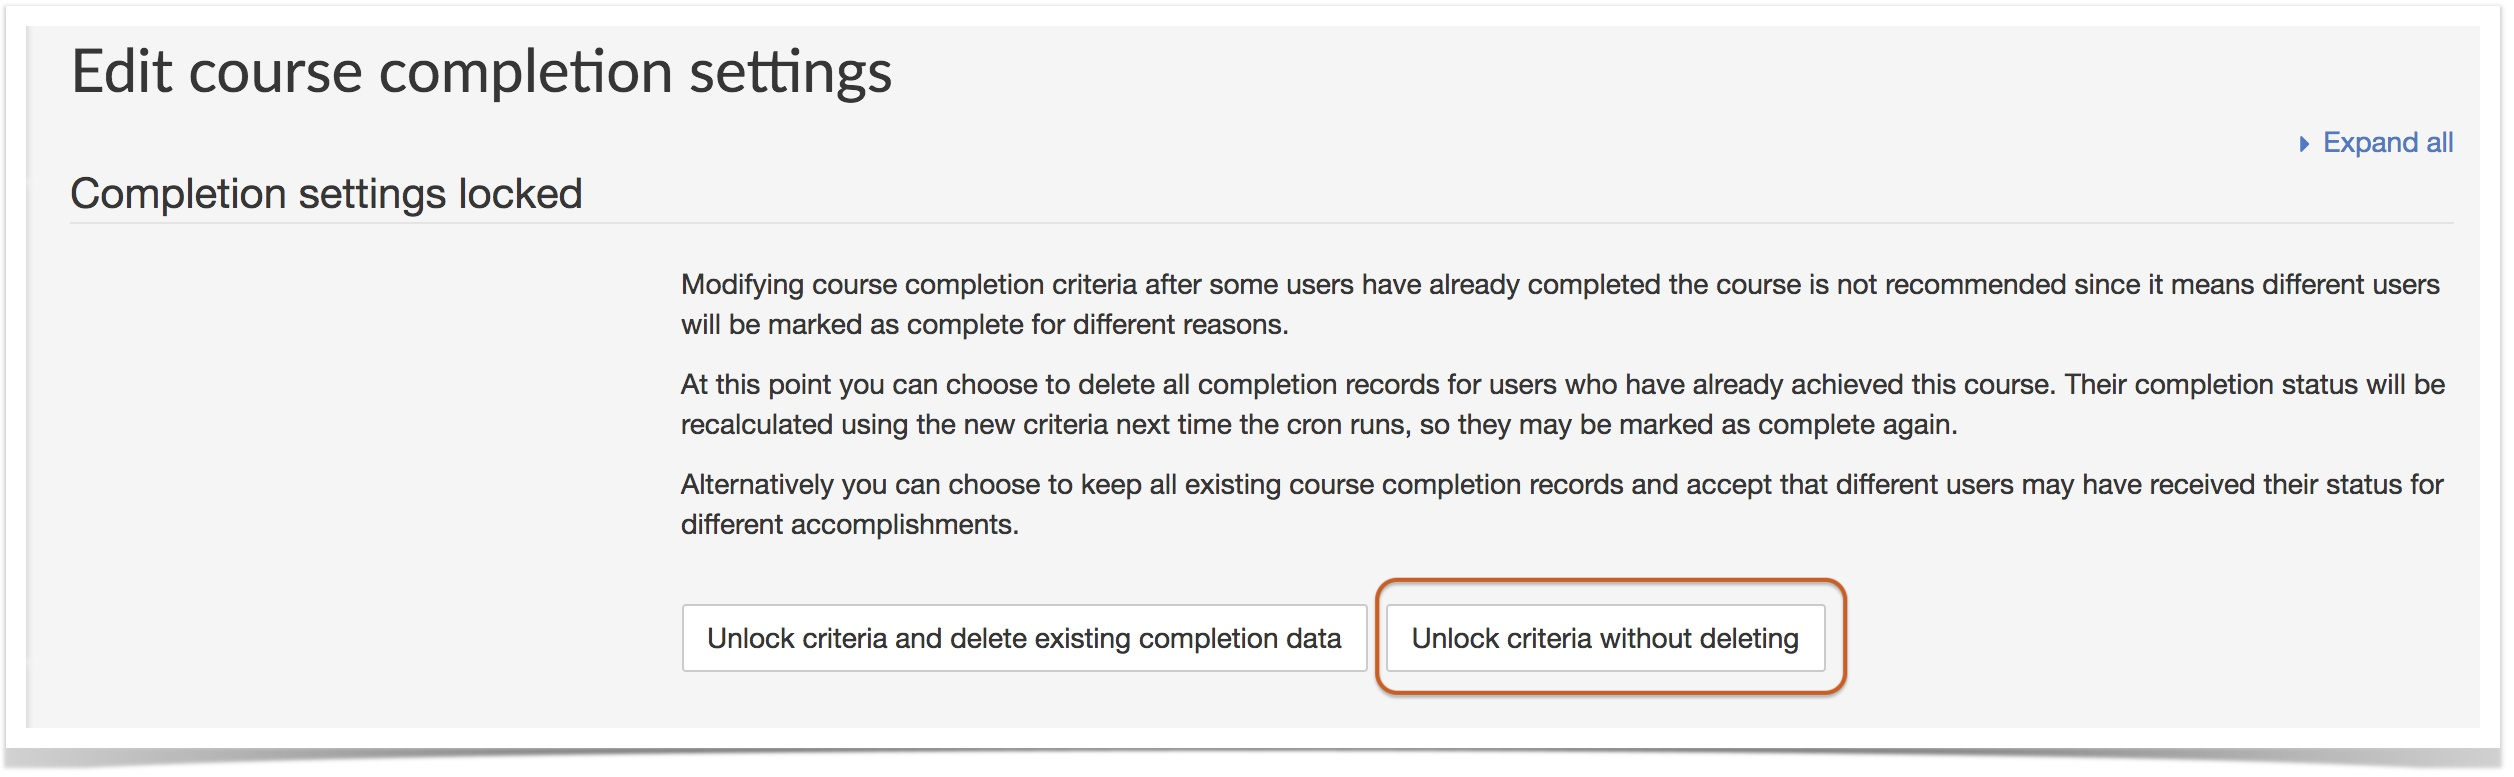 editing course completions with unlock criteria without deleting button circled